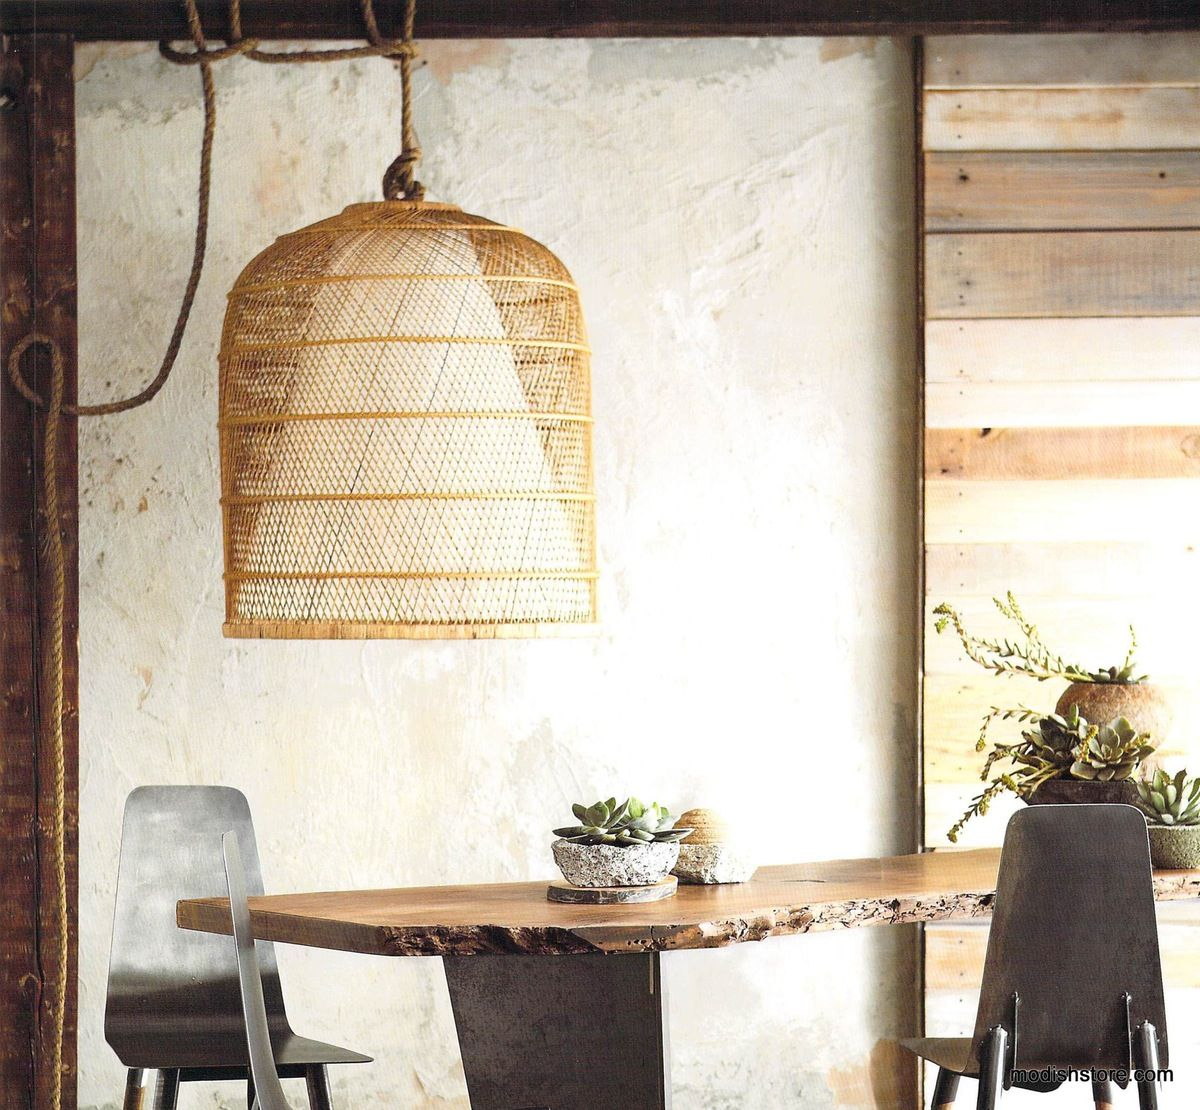 The Basket Cloche lamps by Roost are rustic yet modern Hand crafted palm  leafRoost Basket Cloche Lamp   Pendant lighting  Modern and Lights. Roost Lighting Design. Home Design Ideas